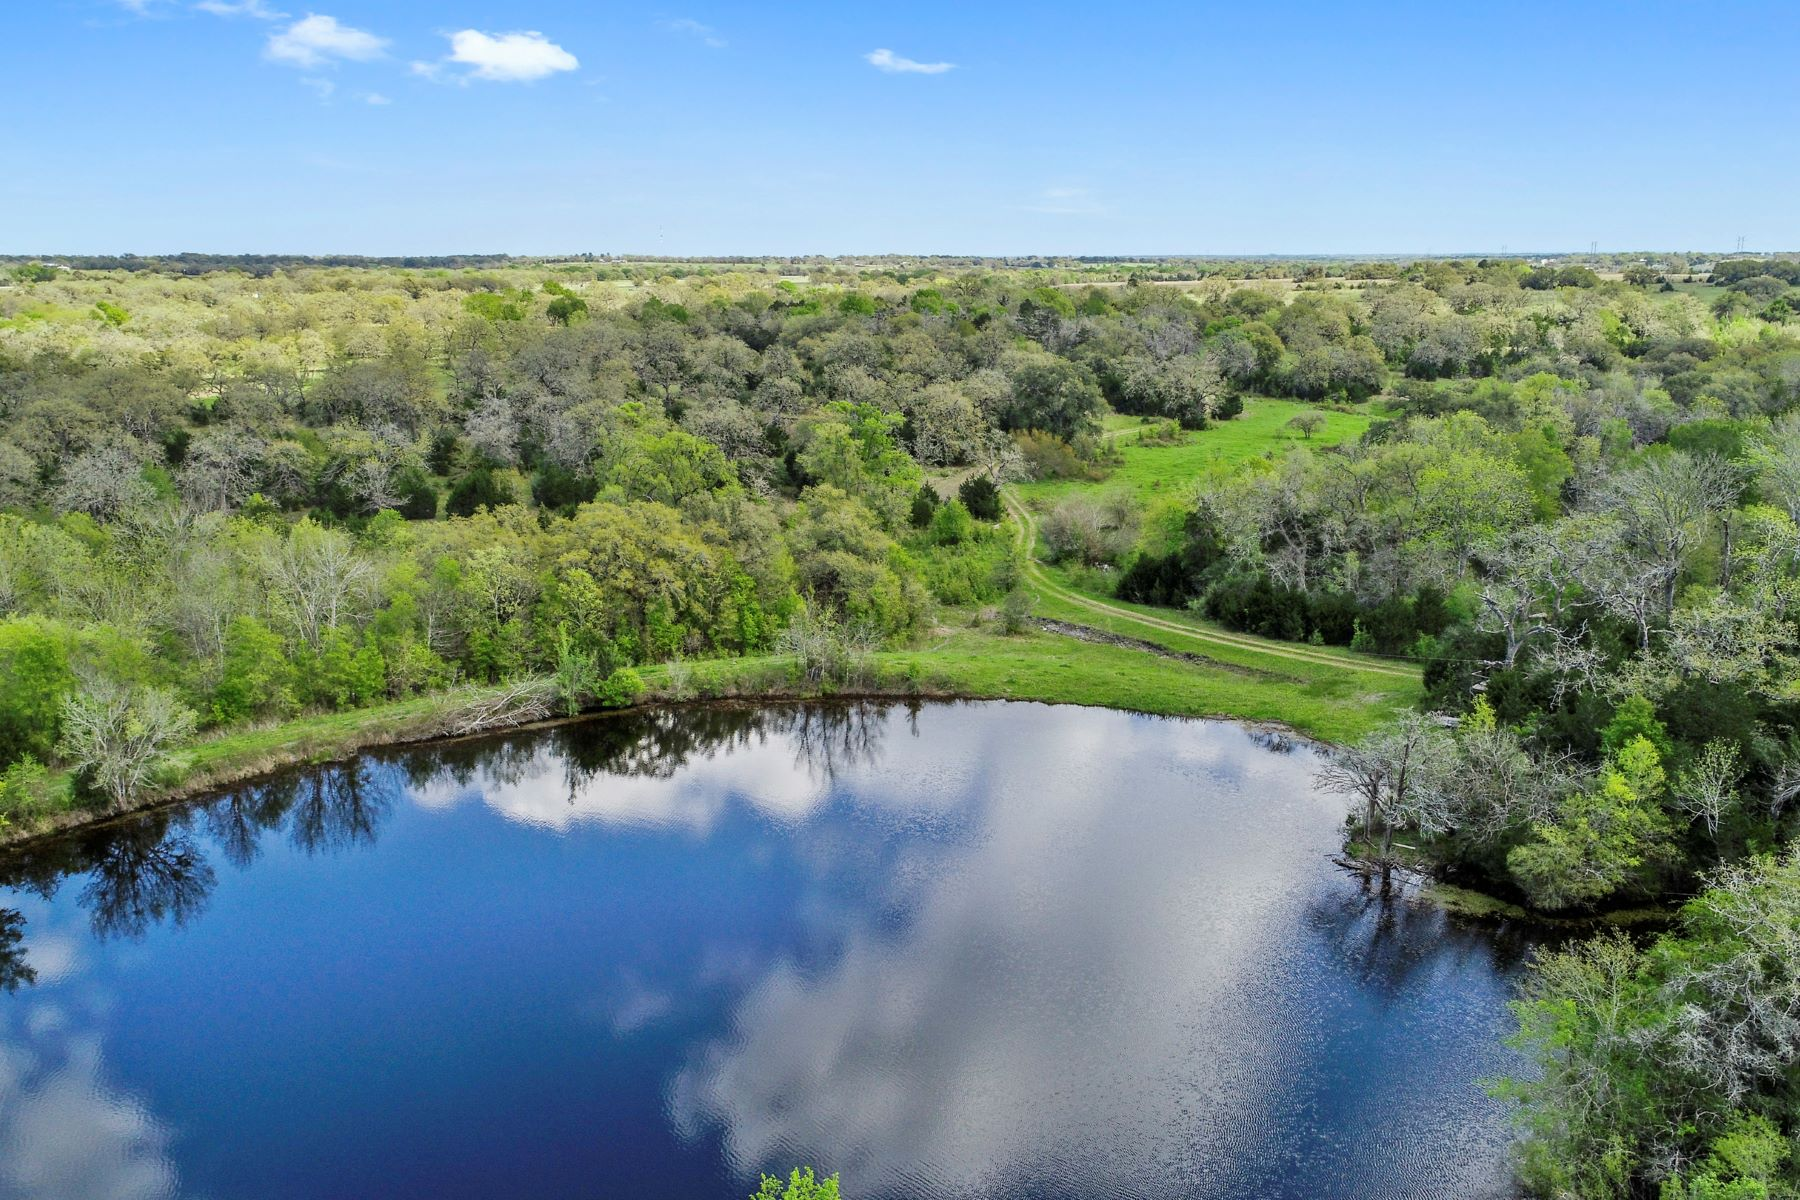 Farm / Ranch / Plantation for Sale at 9370 Laird Road, Round Top, TX 78954 Round Top, Texas 78954 United States